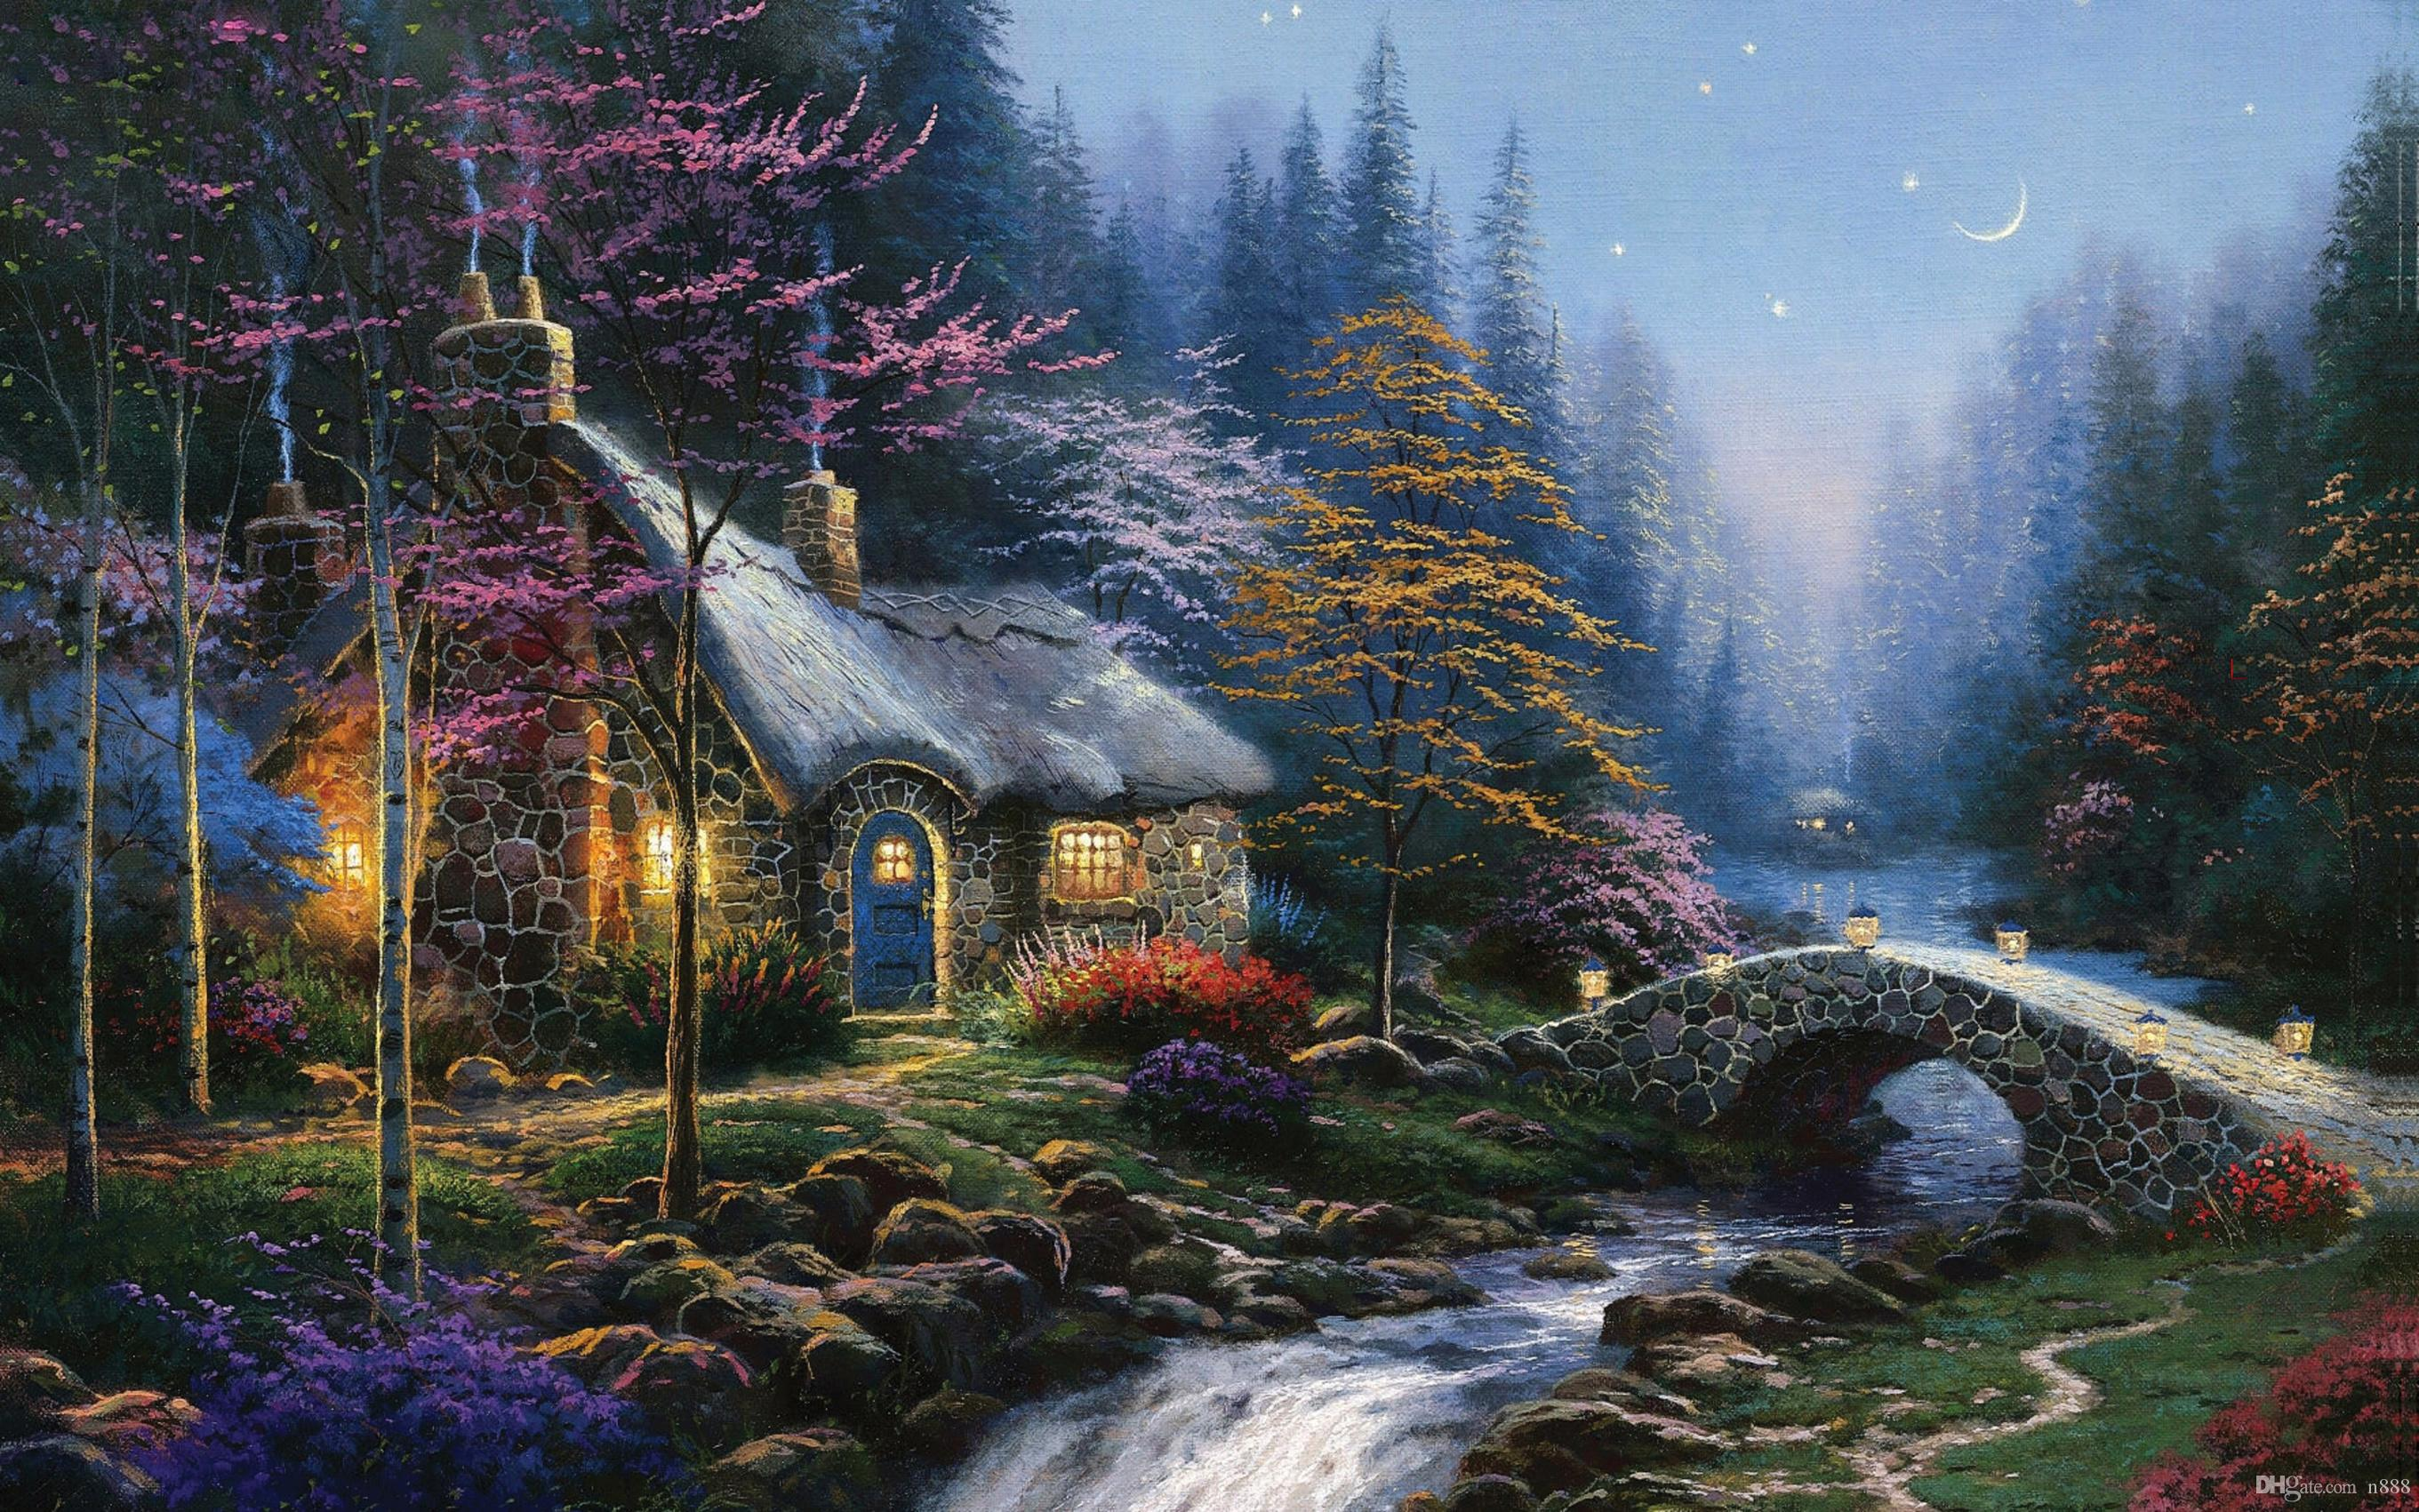 Thomas Kincaid River at night 1-28 Home Decor Handpainted &HD Print Oil Painting On Canvas Wall Art Canvas Pictures 191113